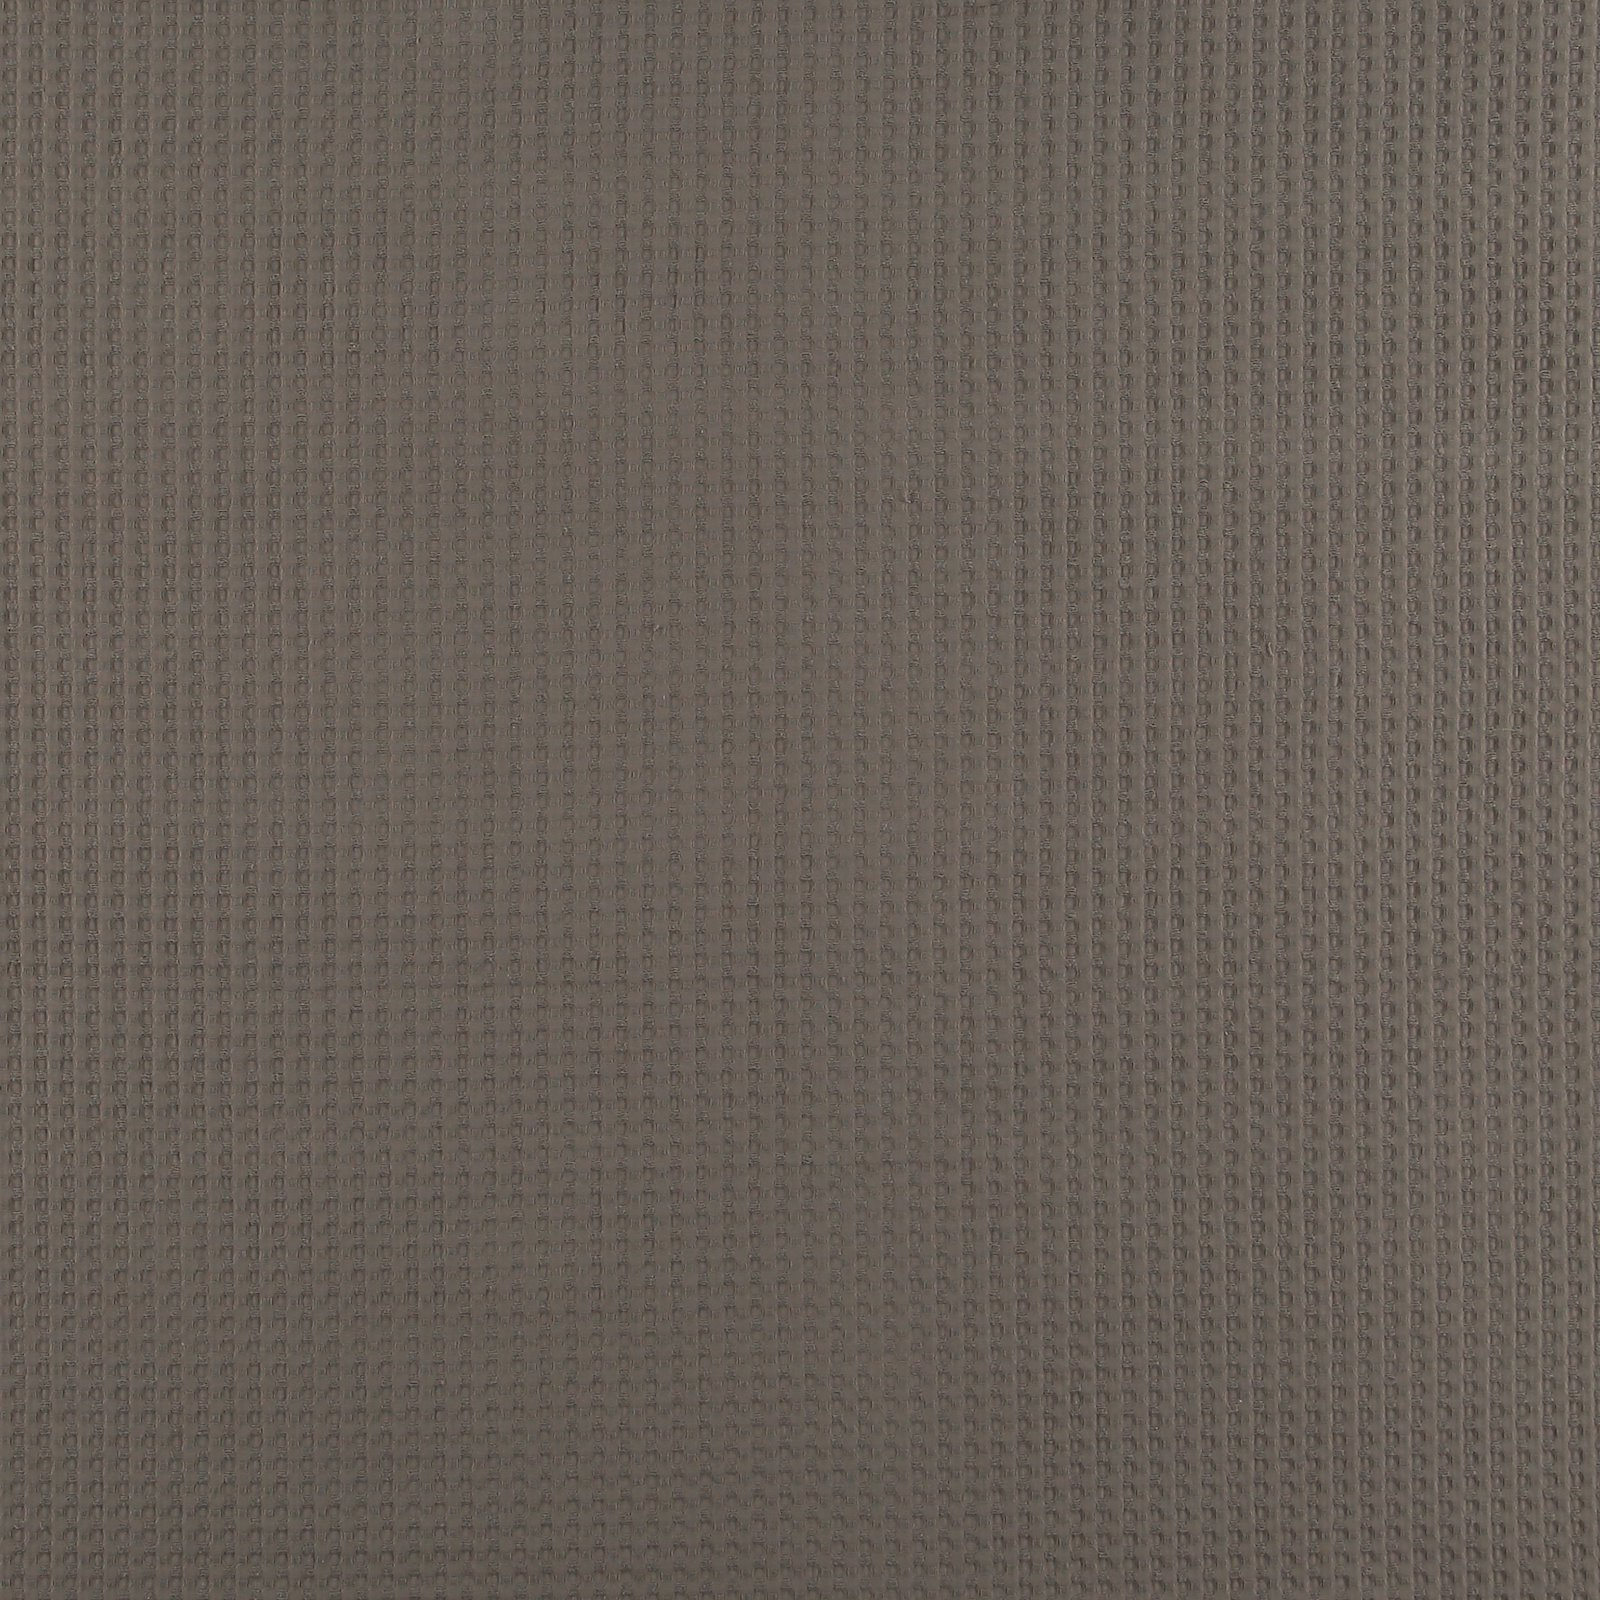 Woven jacquard warm walnut w structure 501888_pack_sp